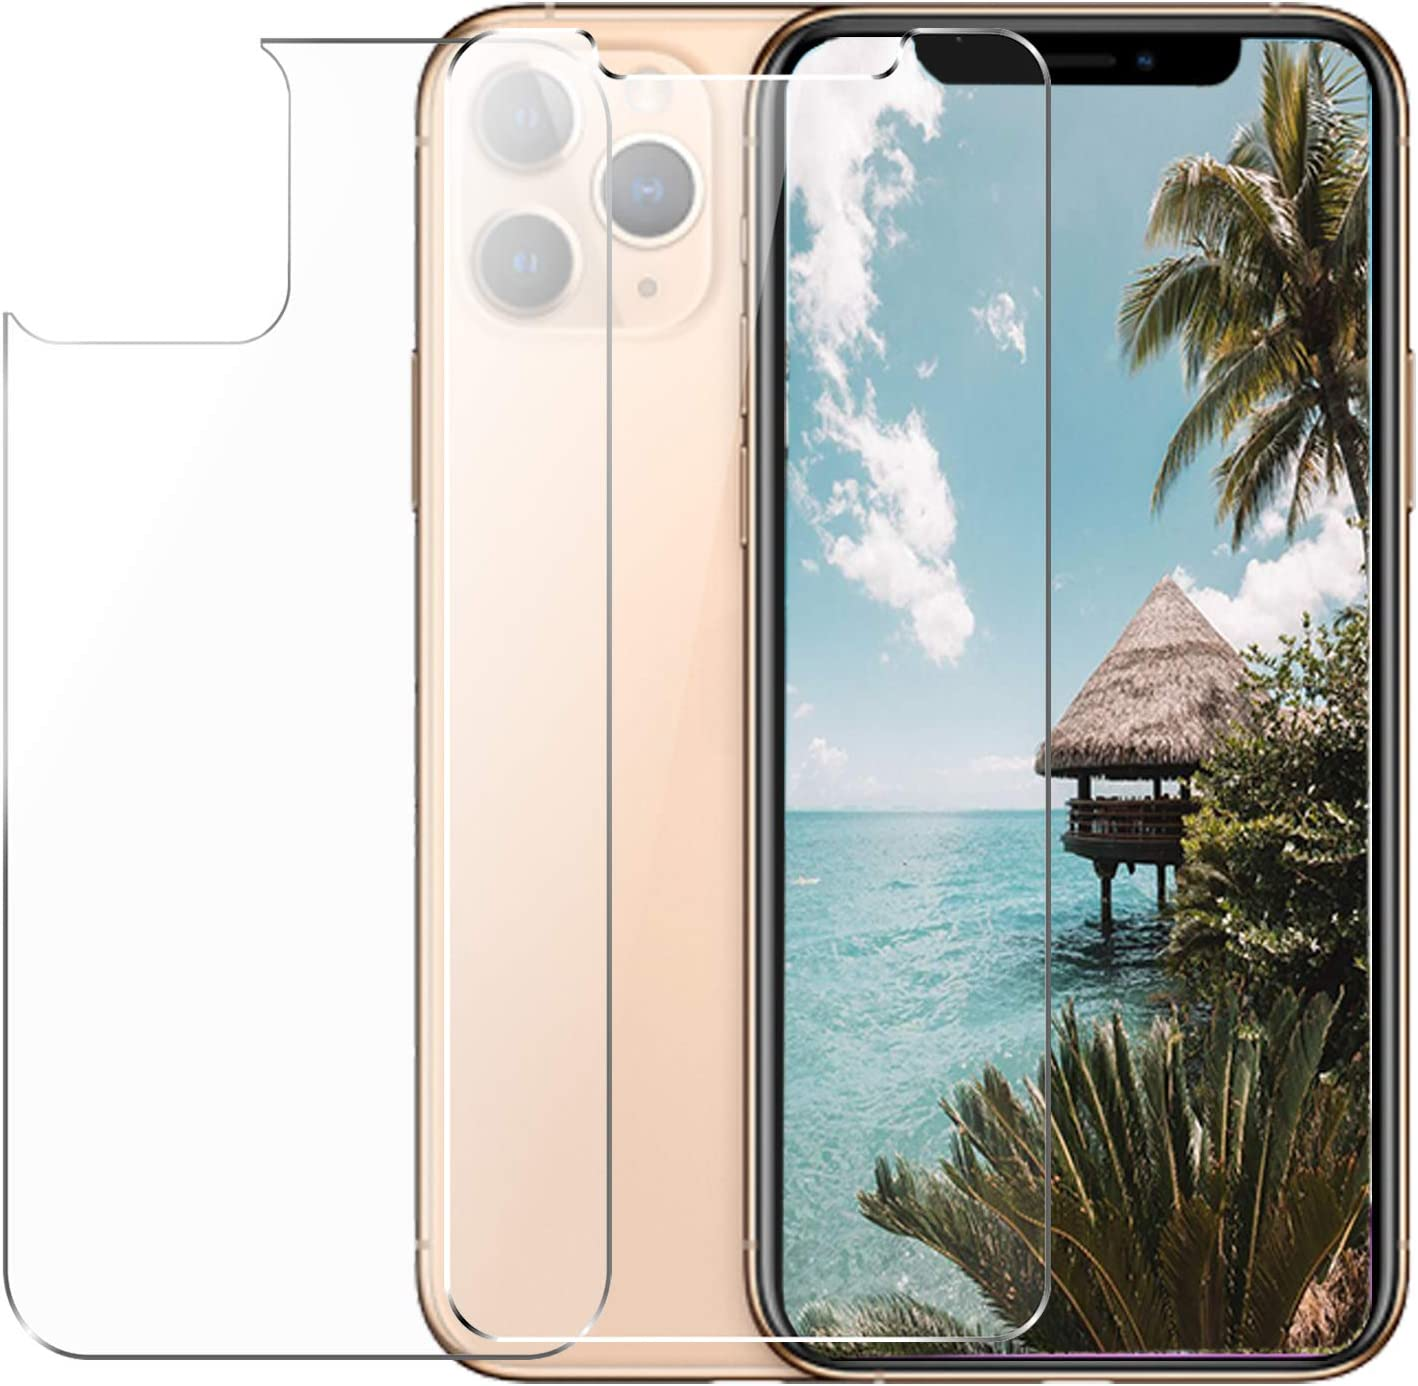 Conleke Front Back Screen Protector for iPhone 11 Pro, Rear Tempered Glass [3D Touch] Temper Glass Film Anti-Fingerprint/Scratch for iPhone11 Pro(Front&Back,5.8inch,2019)